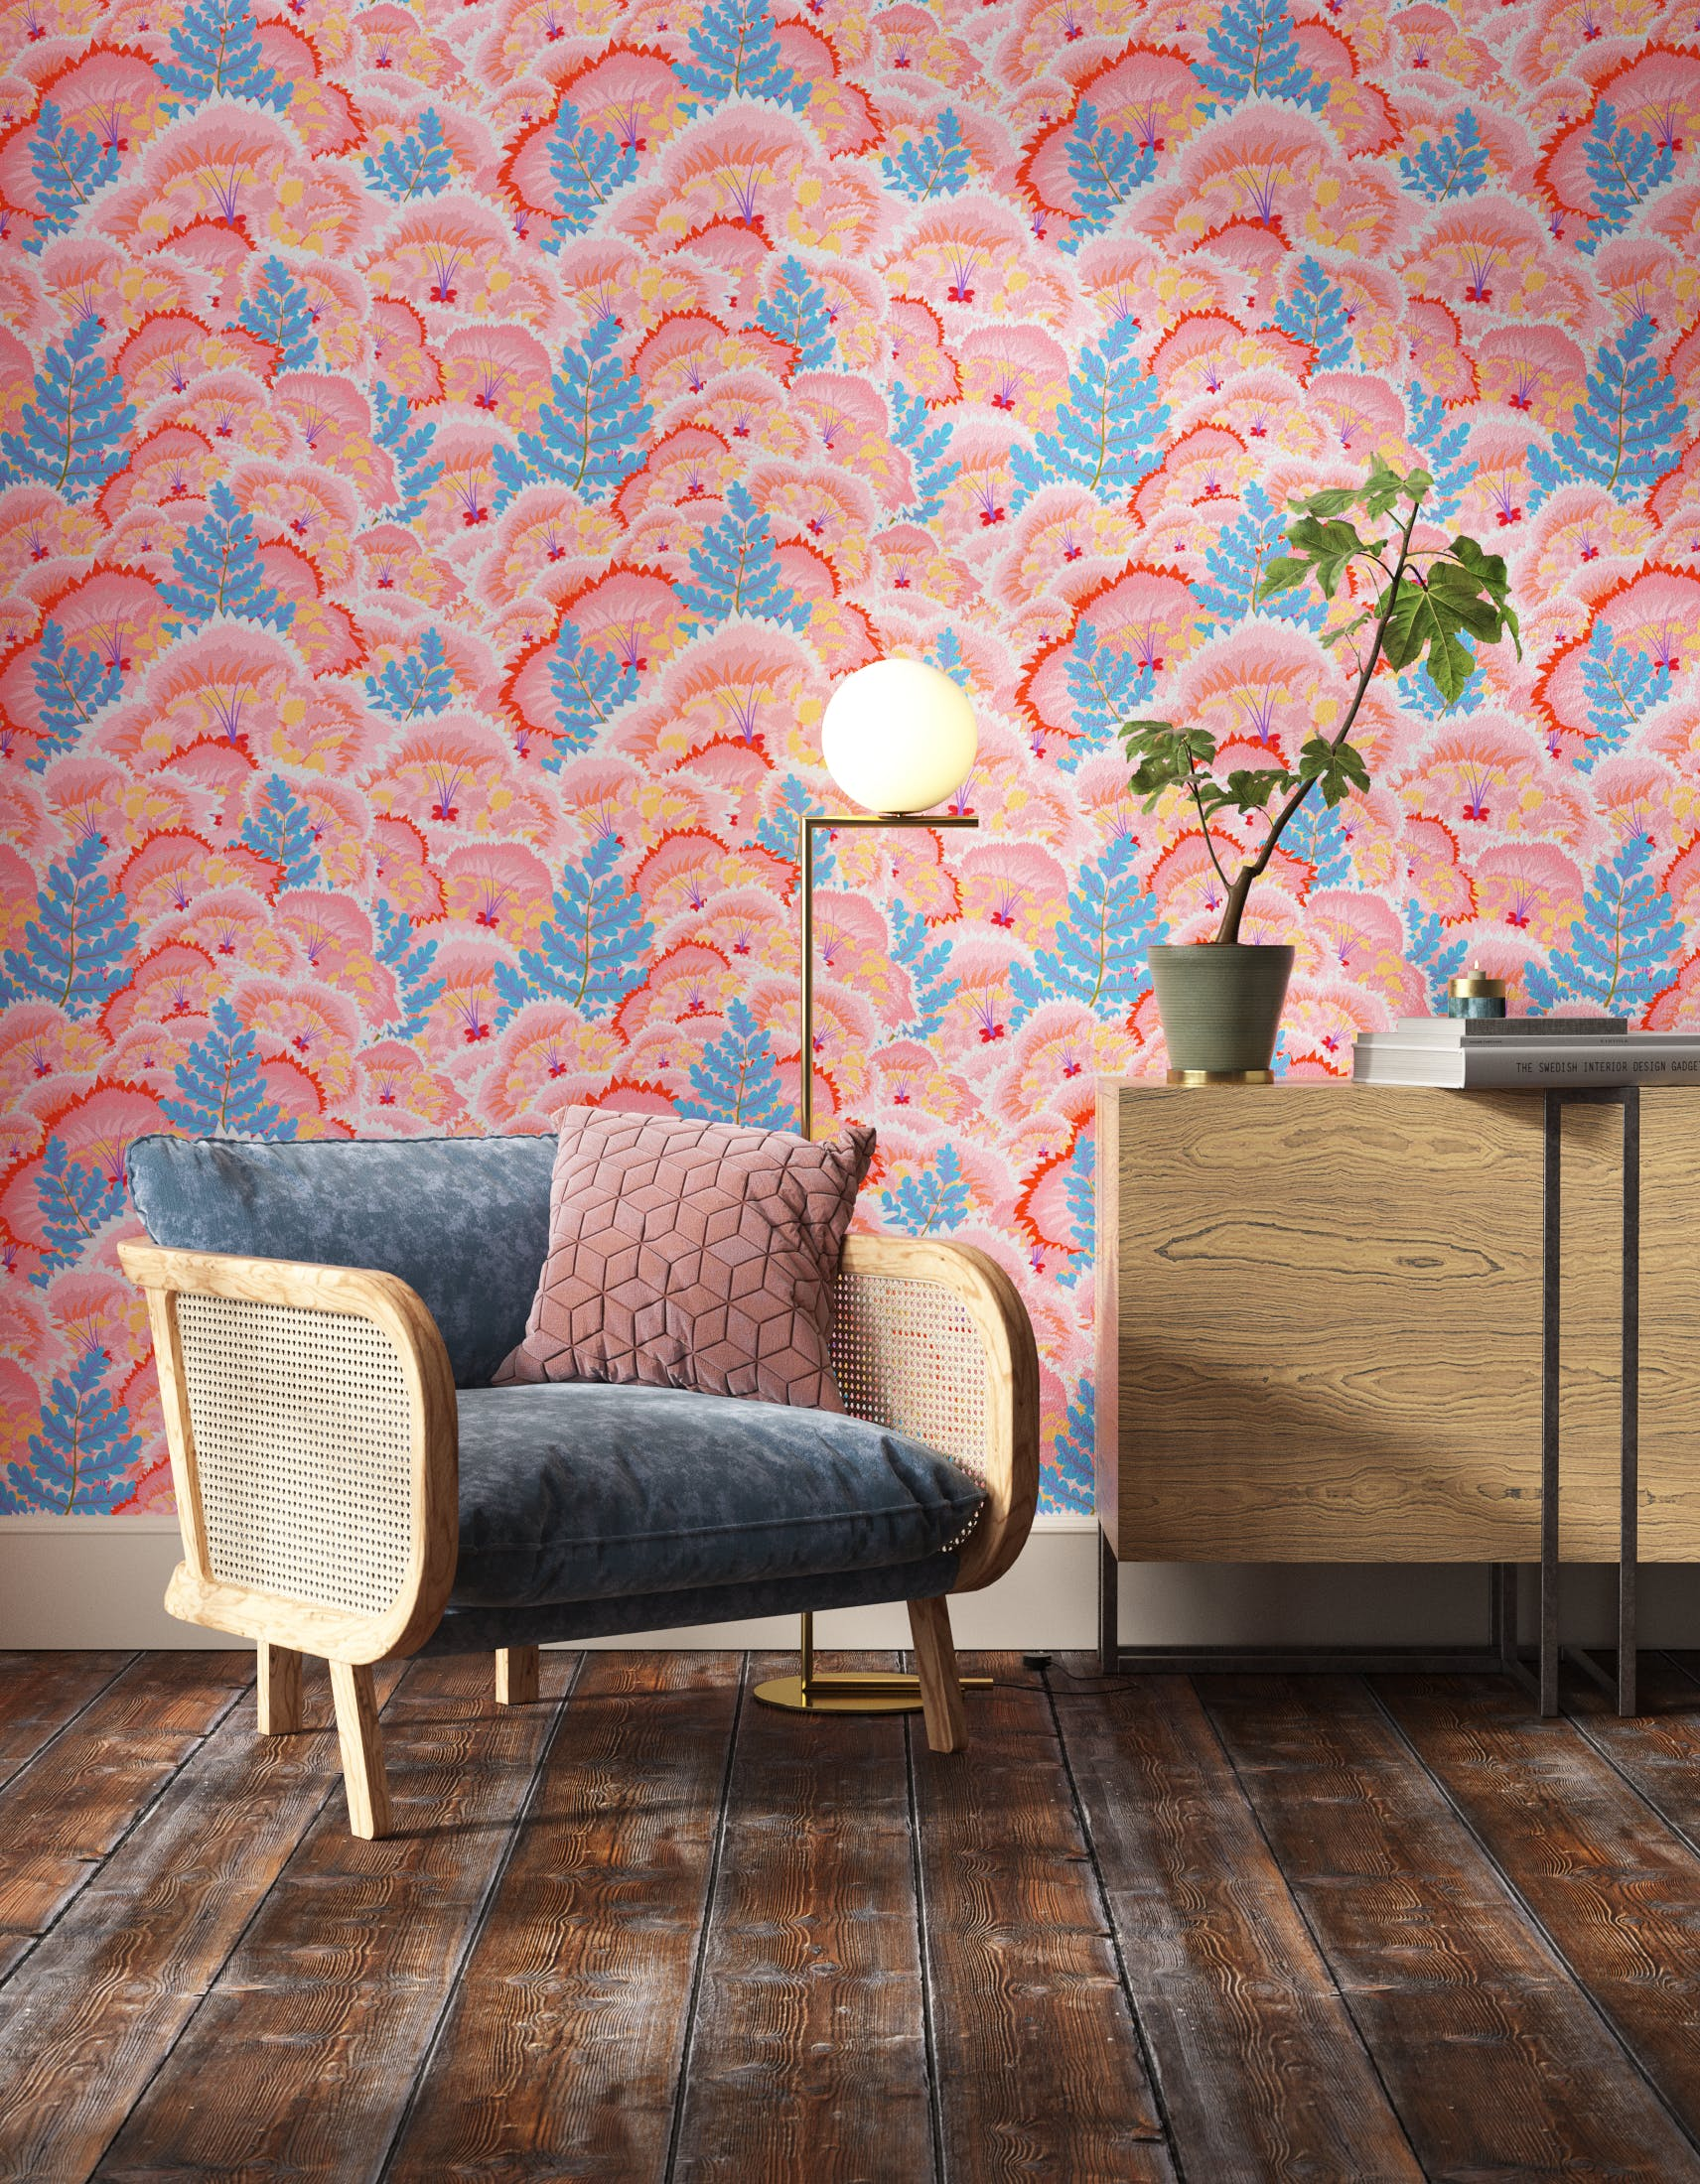 Living room decorated with Lick Electric Poppies 01, a pink floral wallpaper